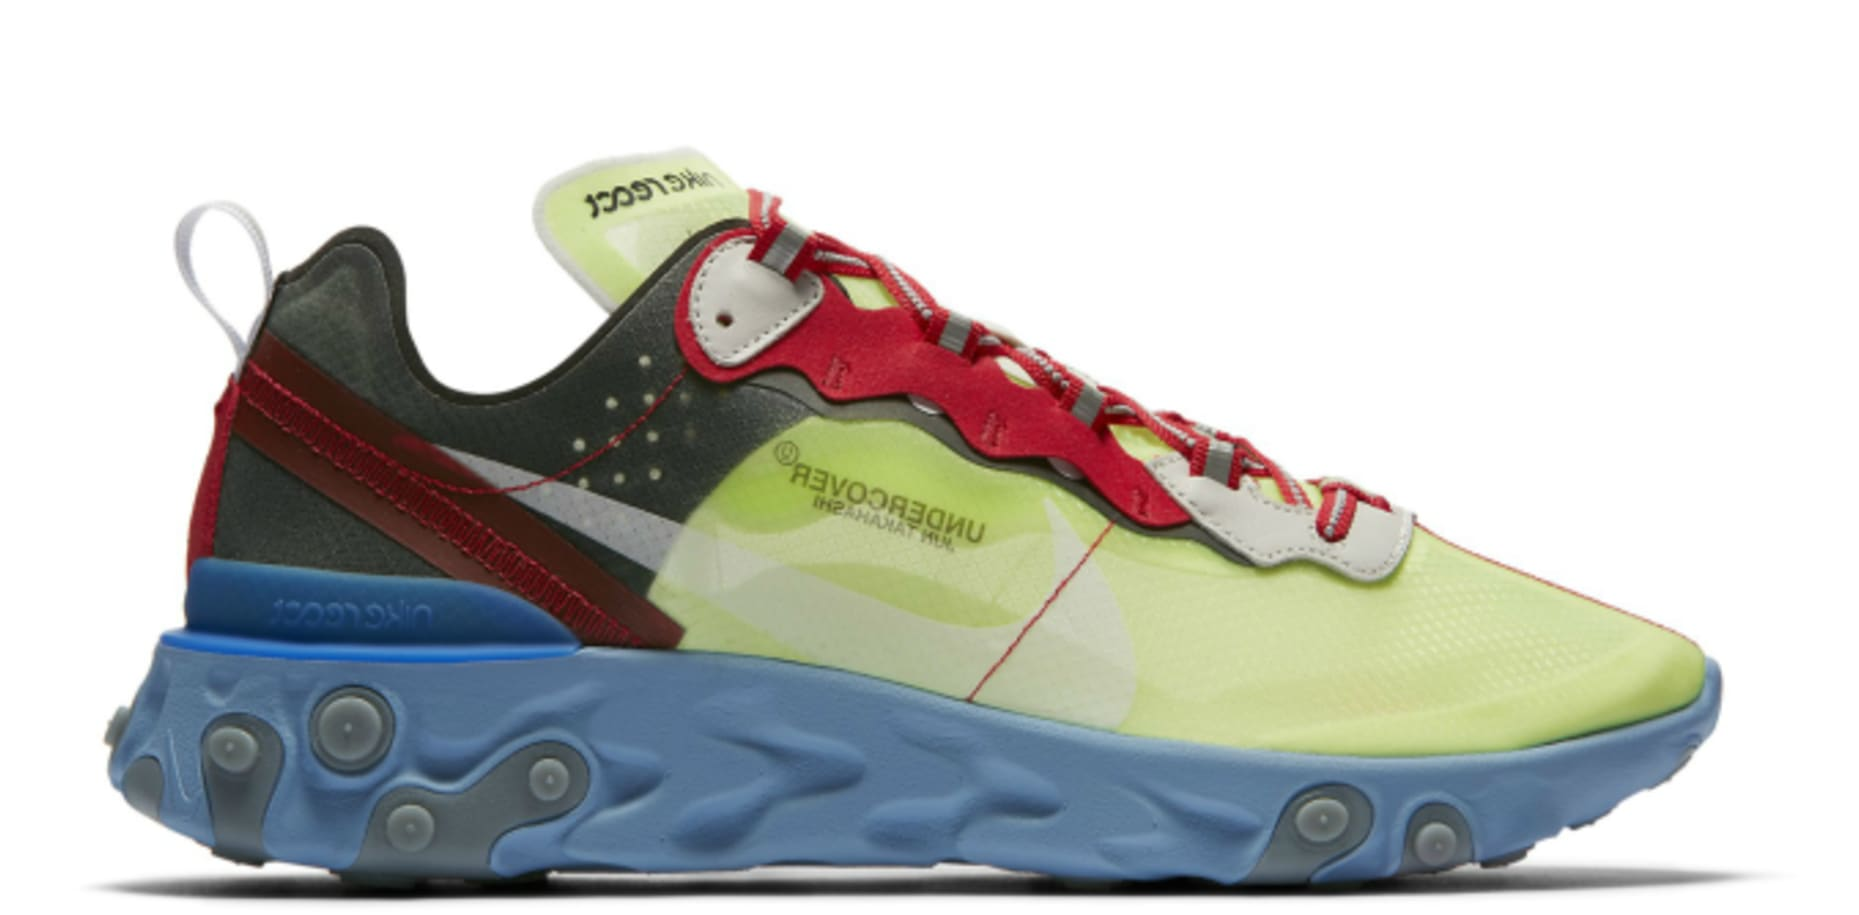 best service 2b8ba 6950d Image via Nike undercover-nike-react-element-87-volt-university-red-